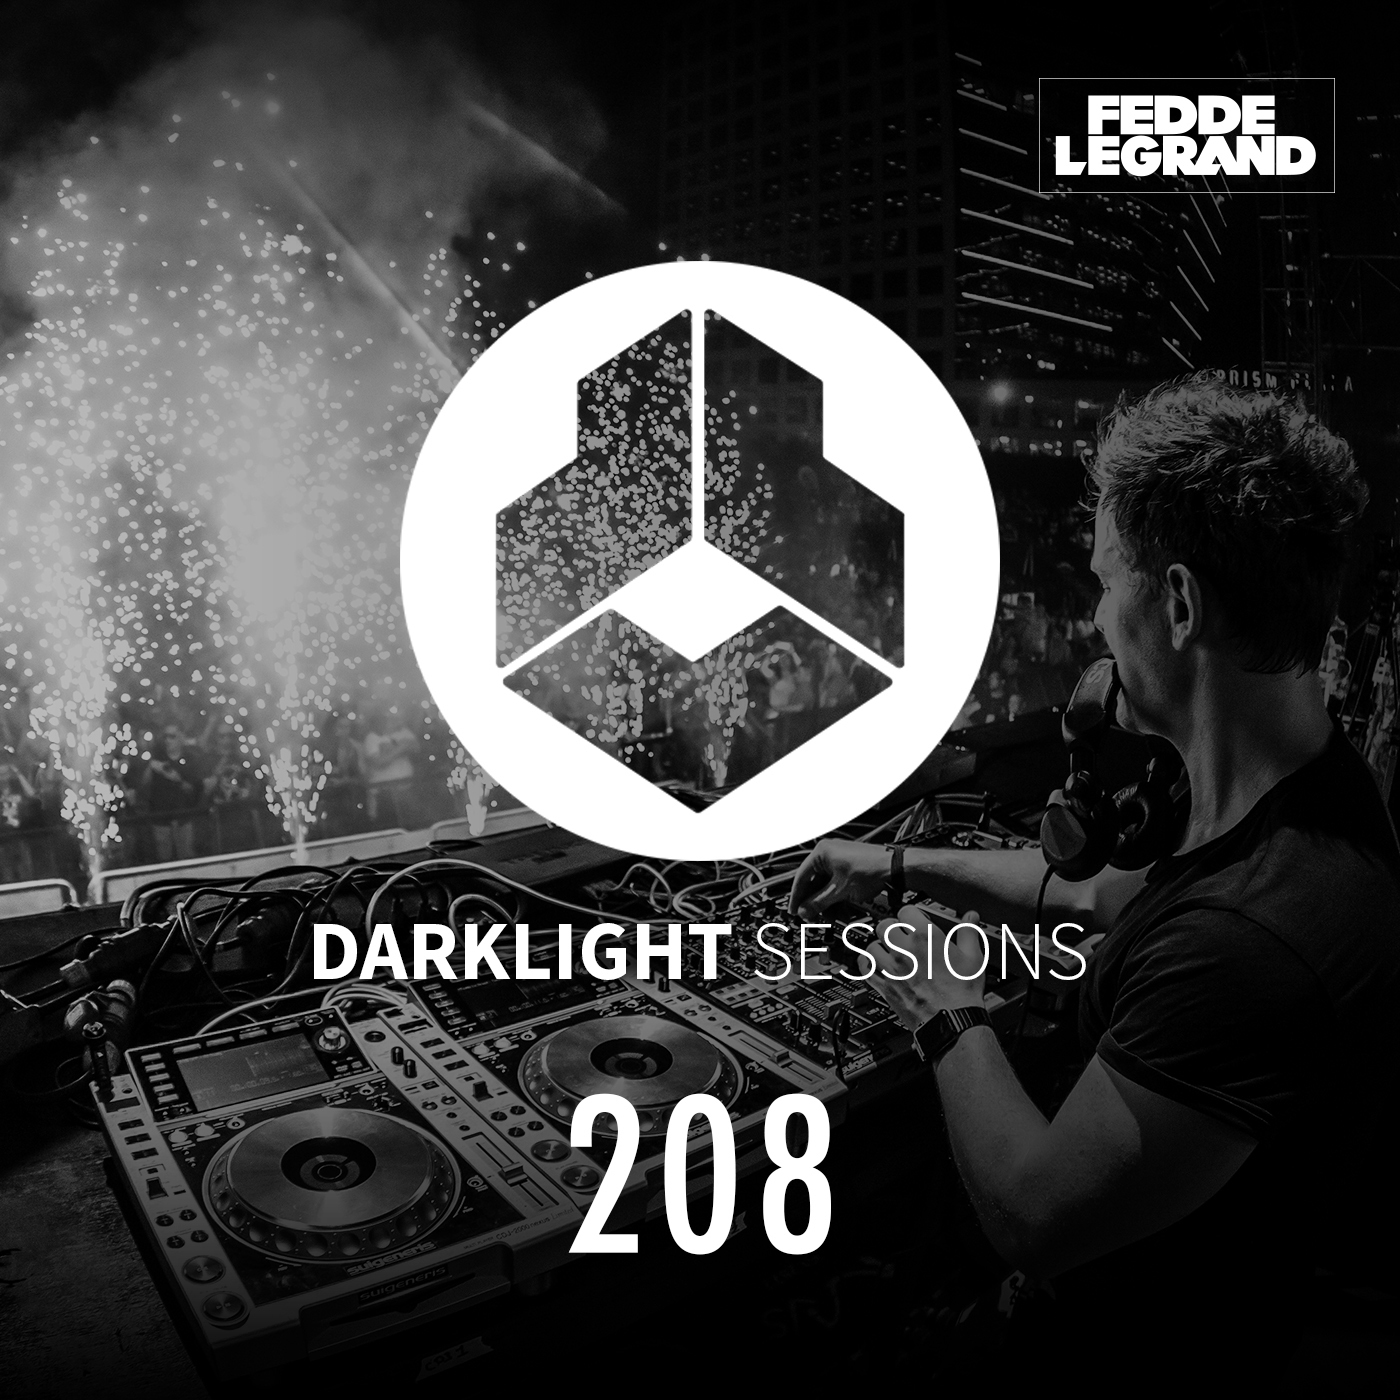 Darklight Sessions 208